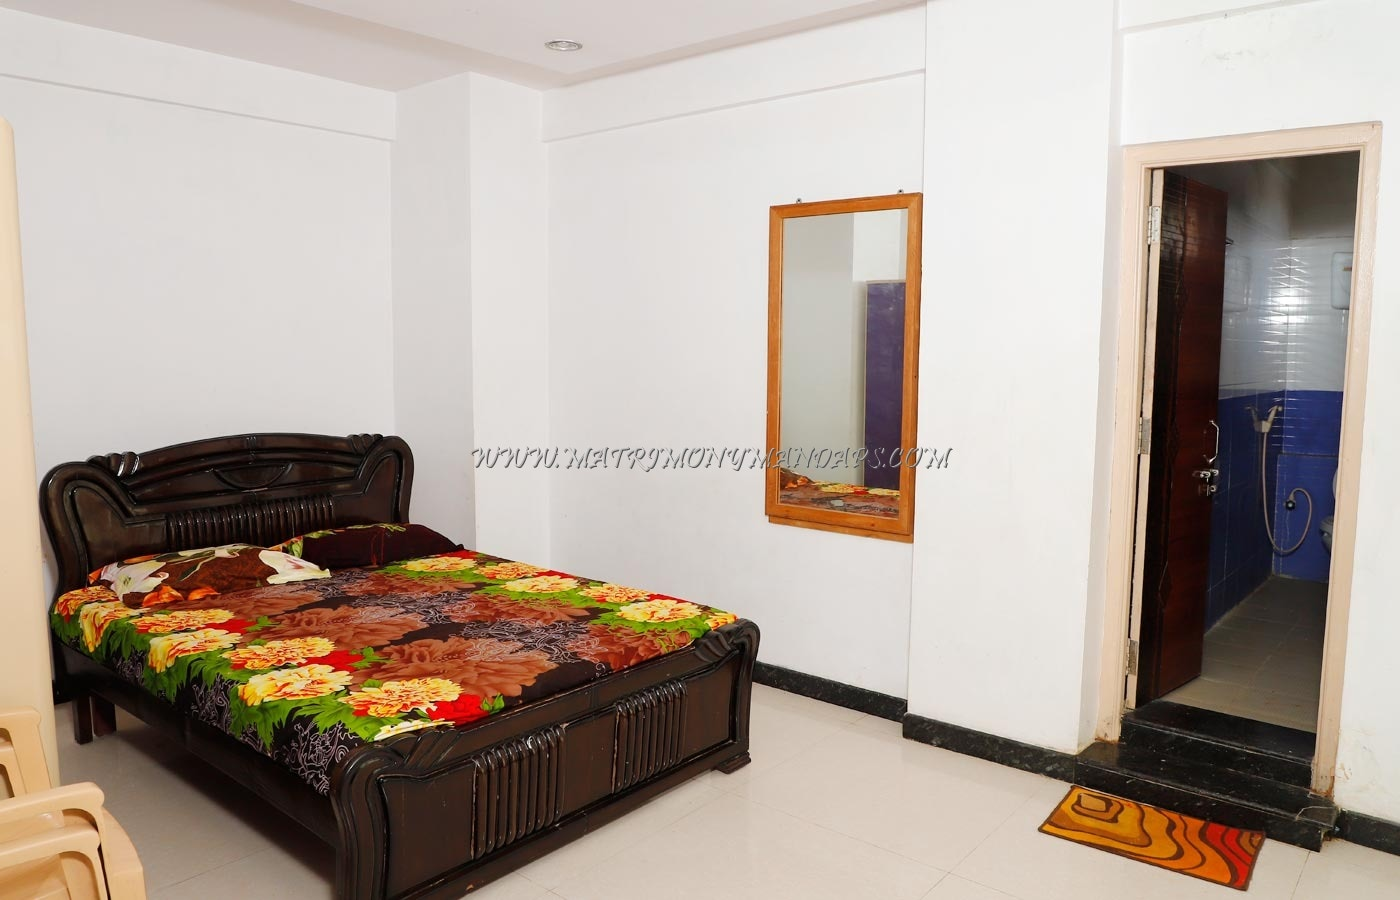 Shamala Siddagangaiah Convention Centre - Rooms